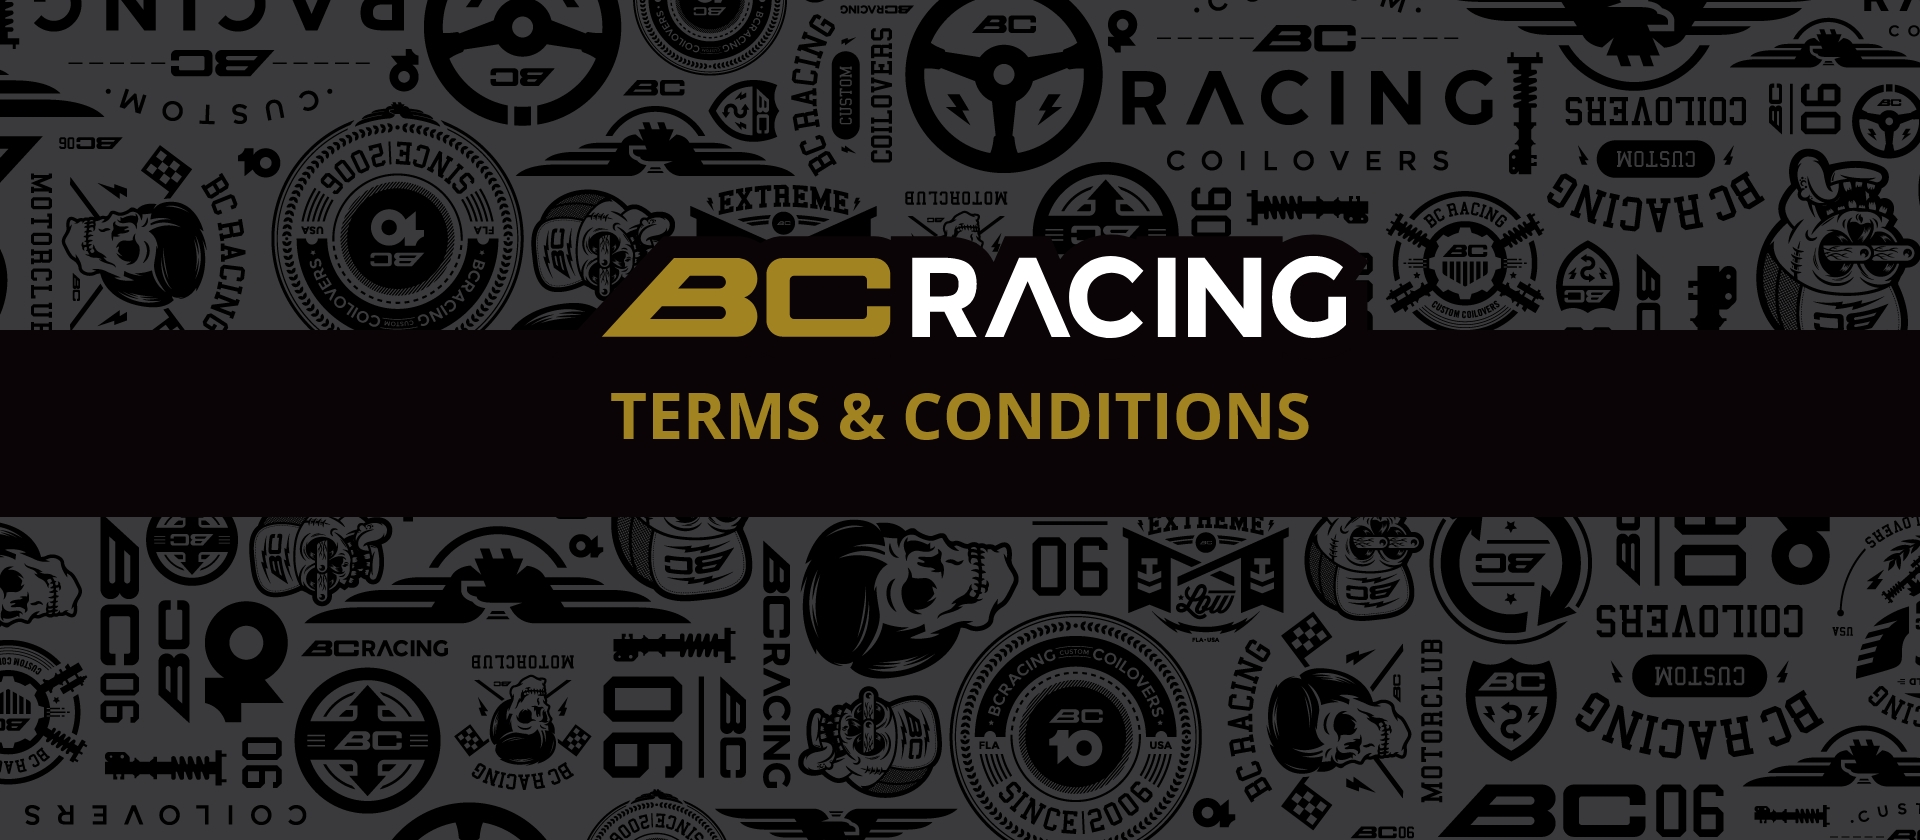 BC Racing Terms & Conditions